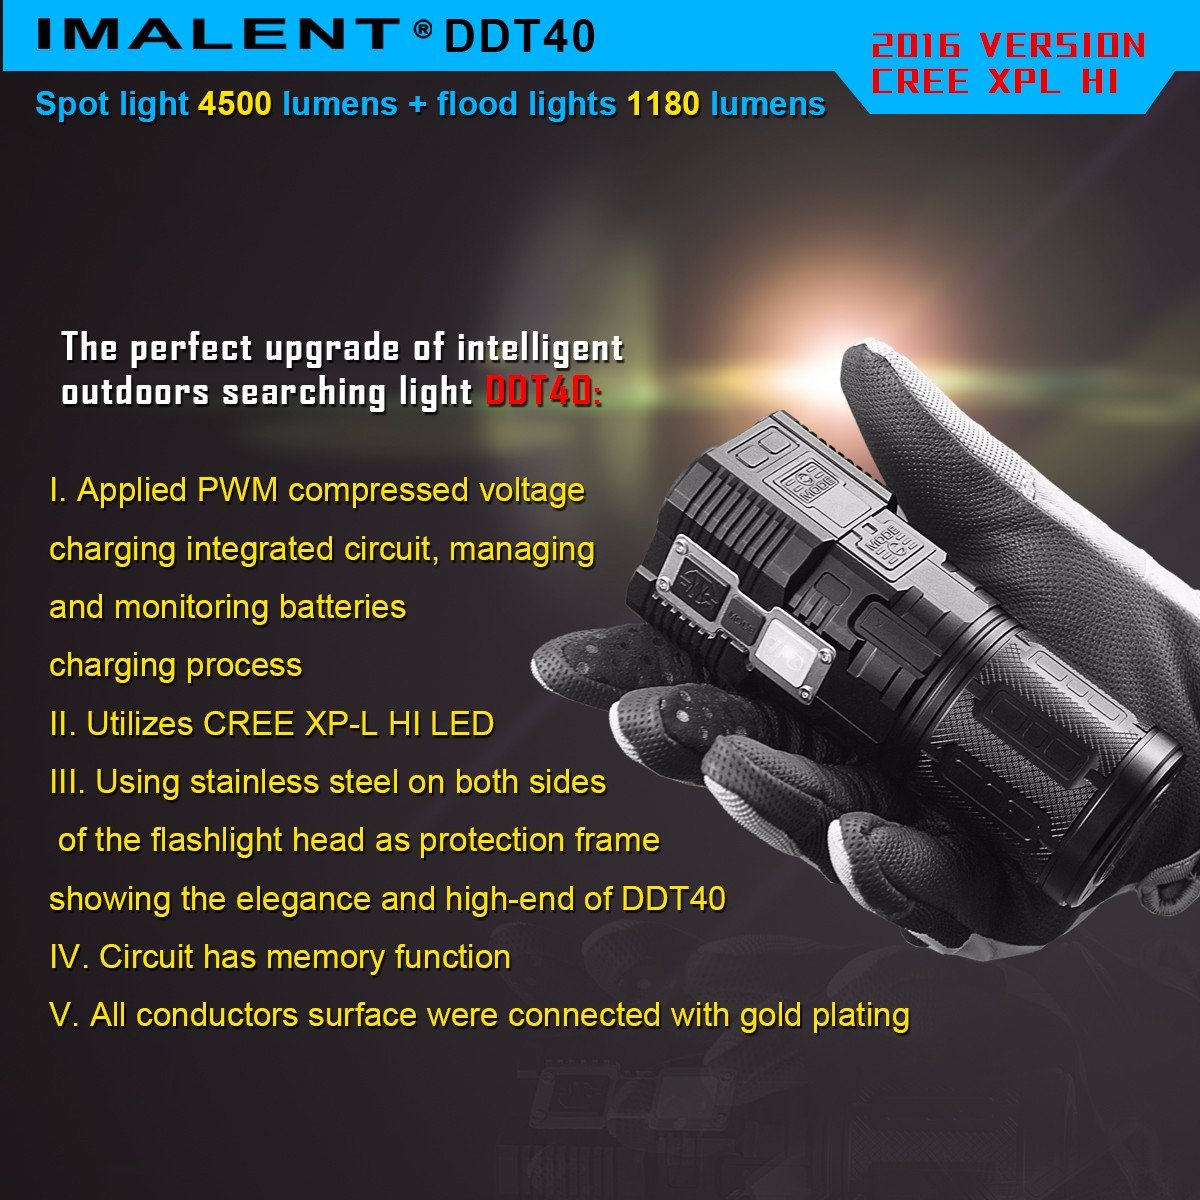 IMALENT DDT40 4500 Lumens +1180 Lumens Handheld LED Flashlight Powered Tactical Flashlight for Camping Hiking (The item can be delivered within 10 days)